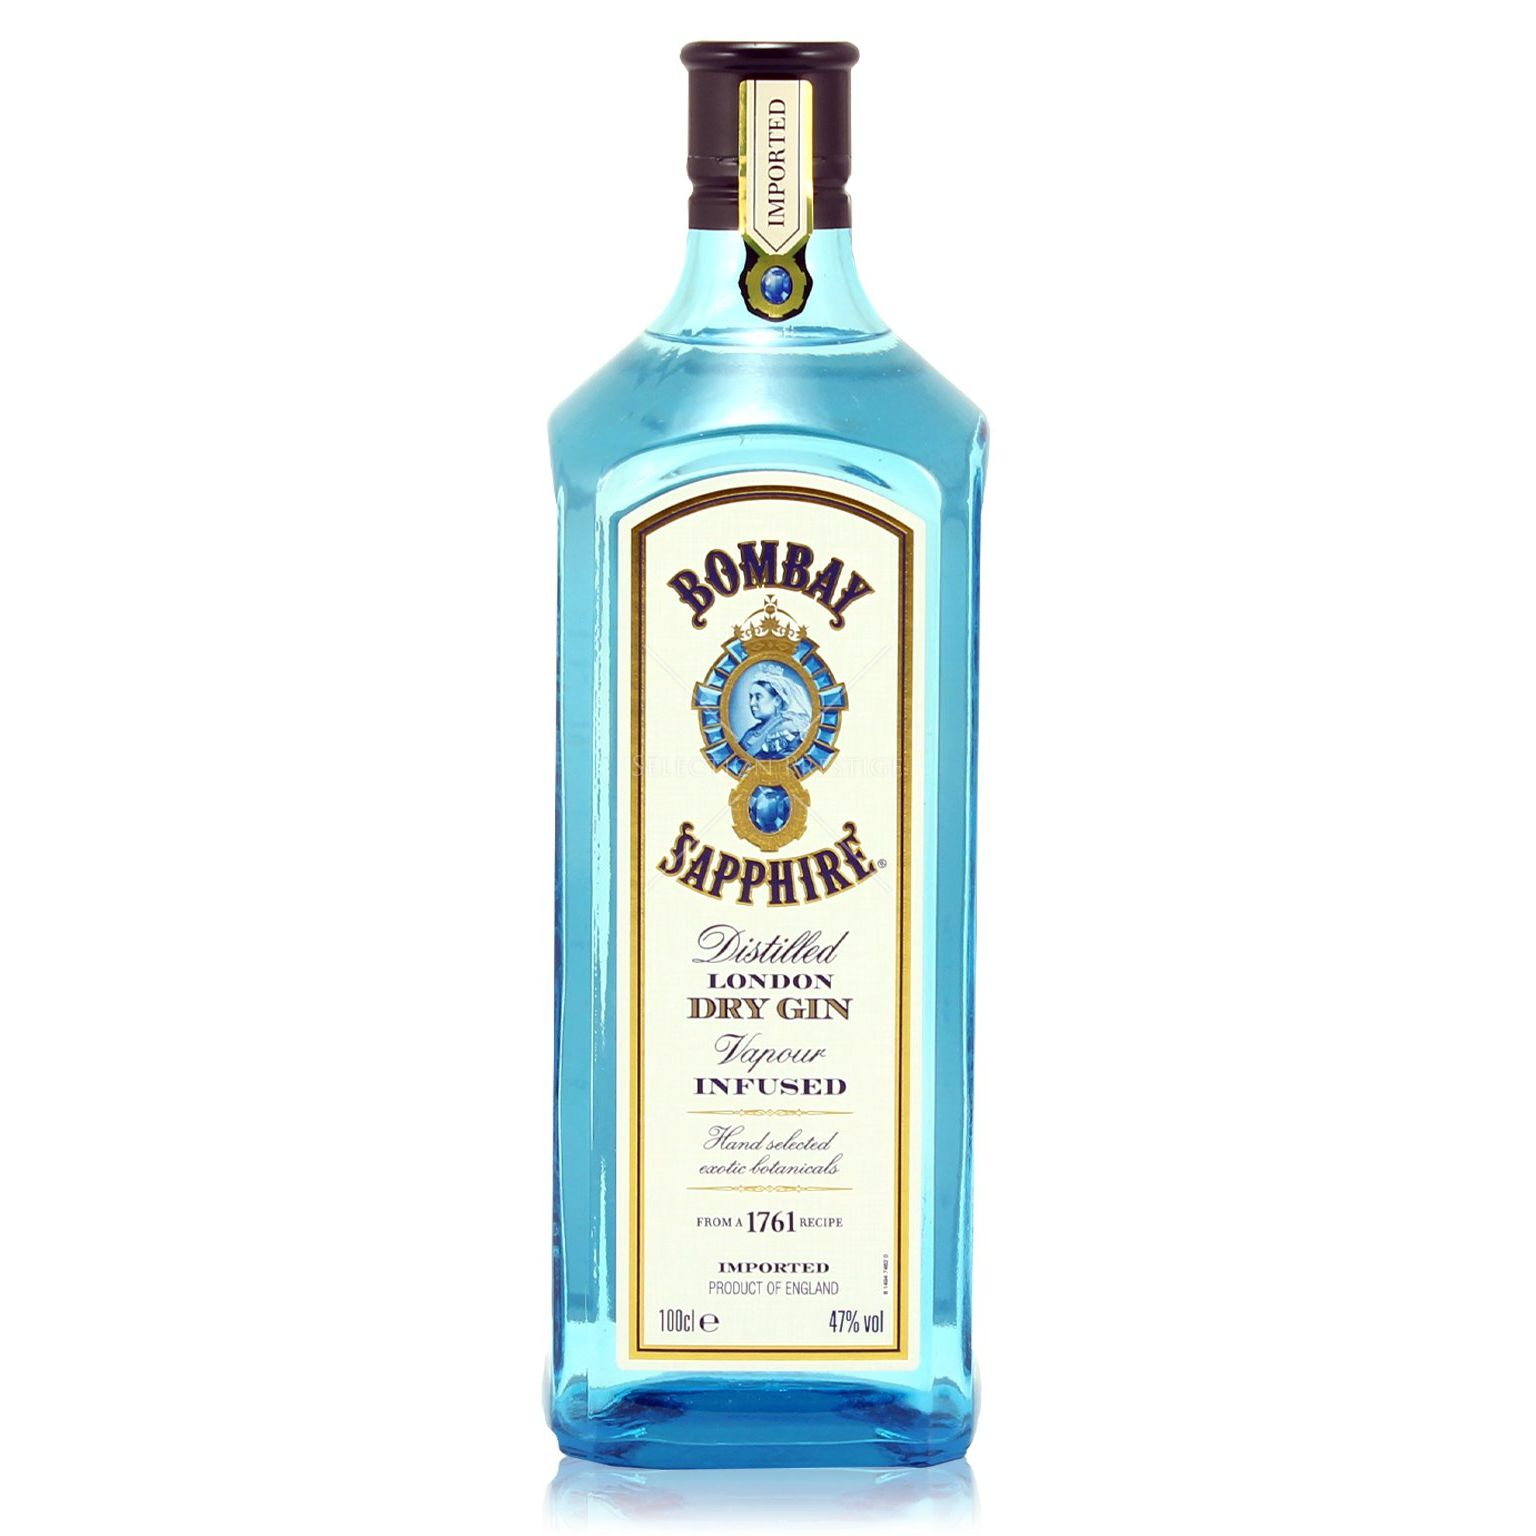 BOMBAY DRY GIN 100cl